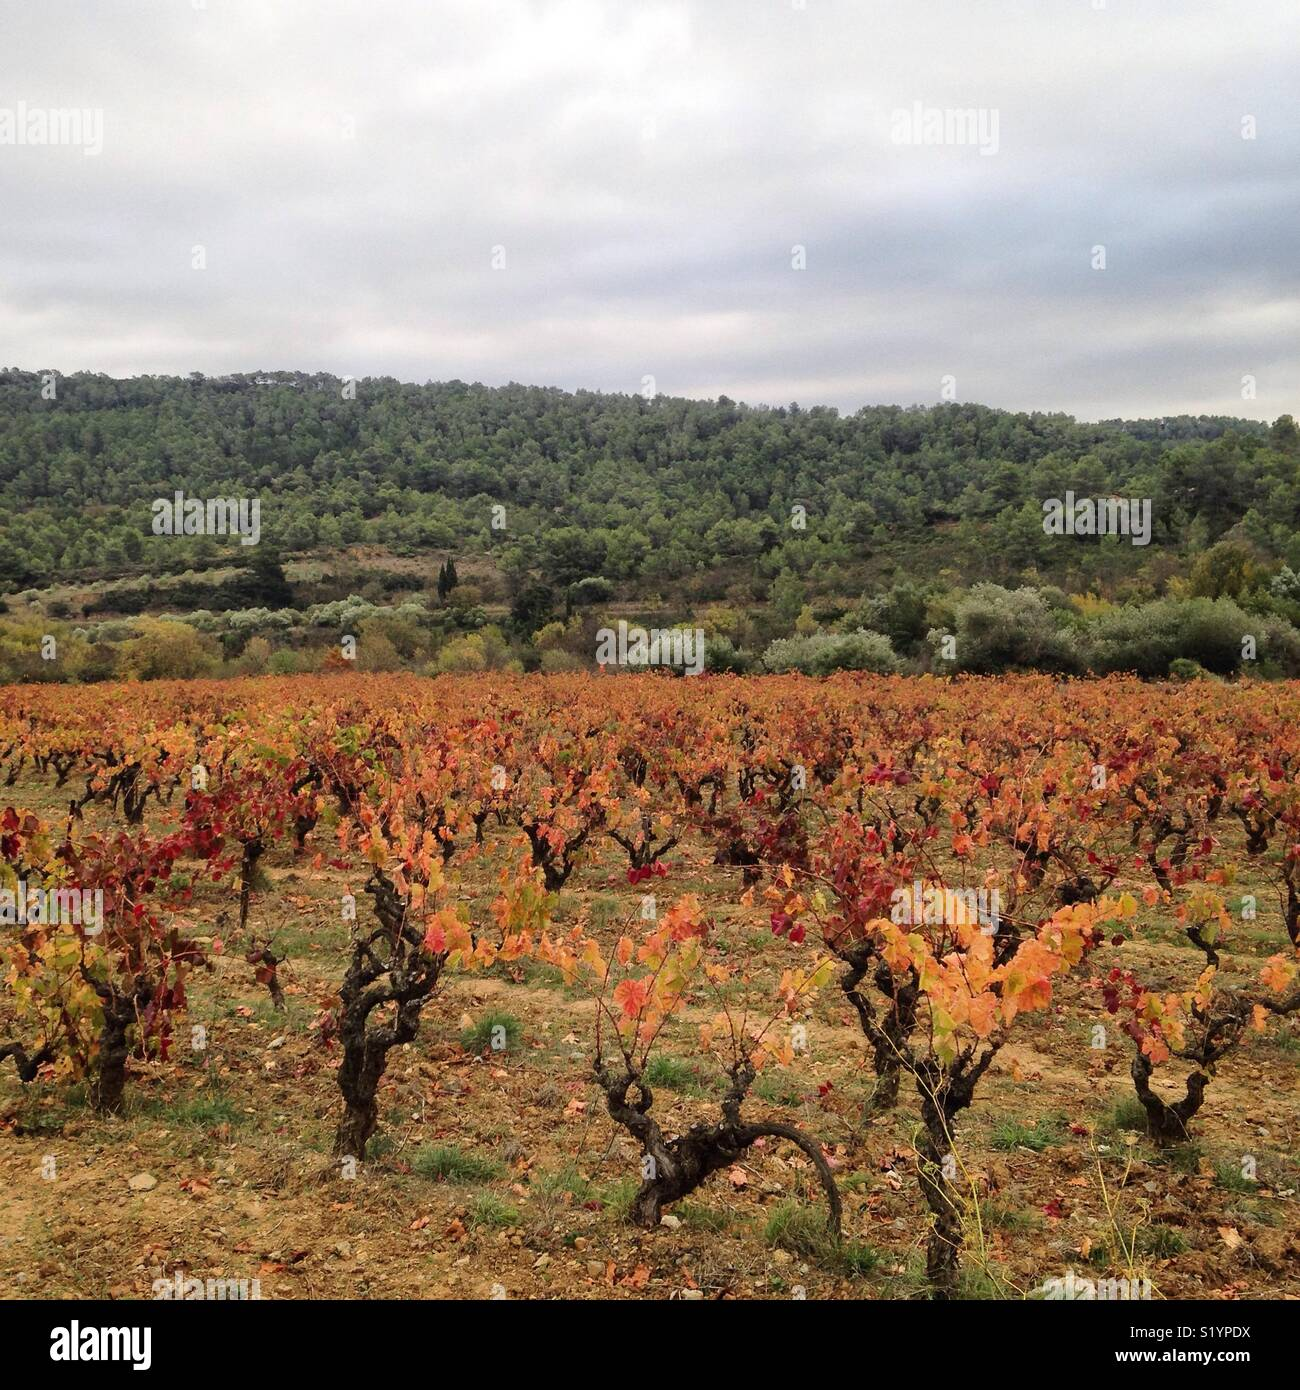 View of vineyards in the Corbières wine region of southern France Stock Photo